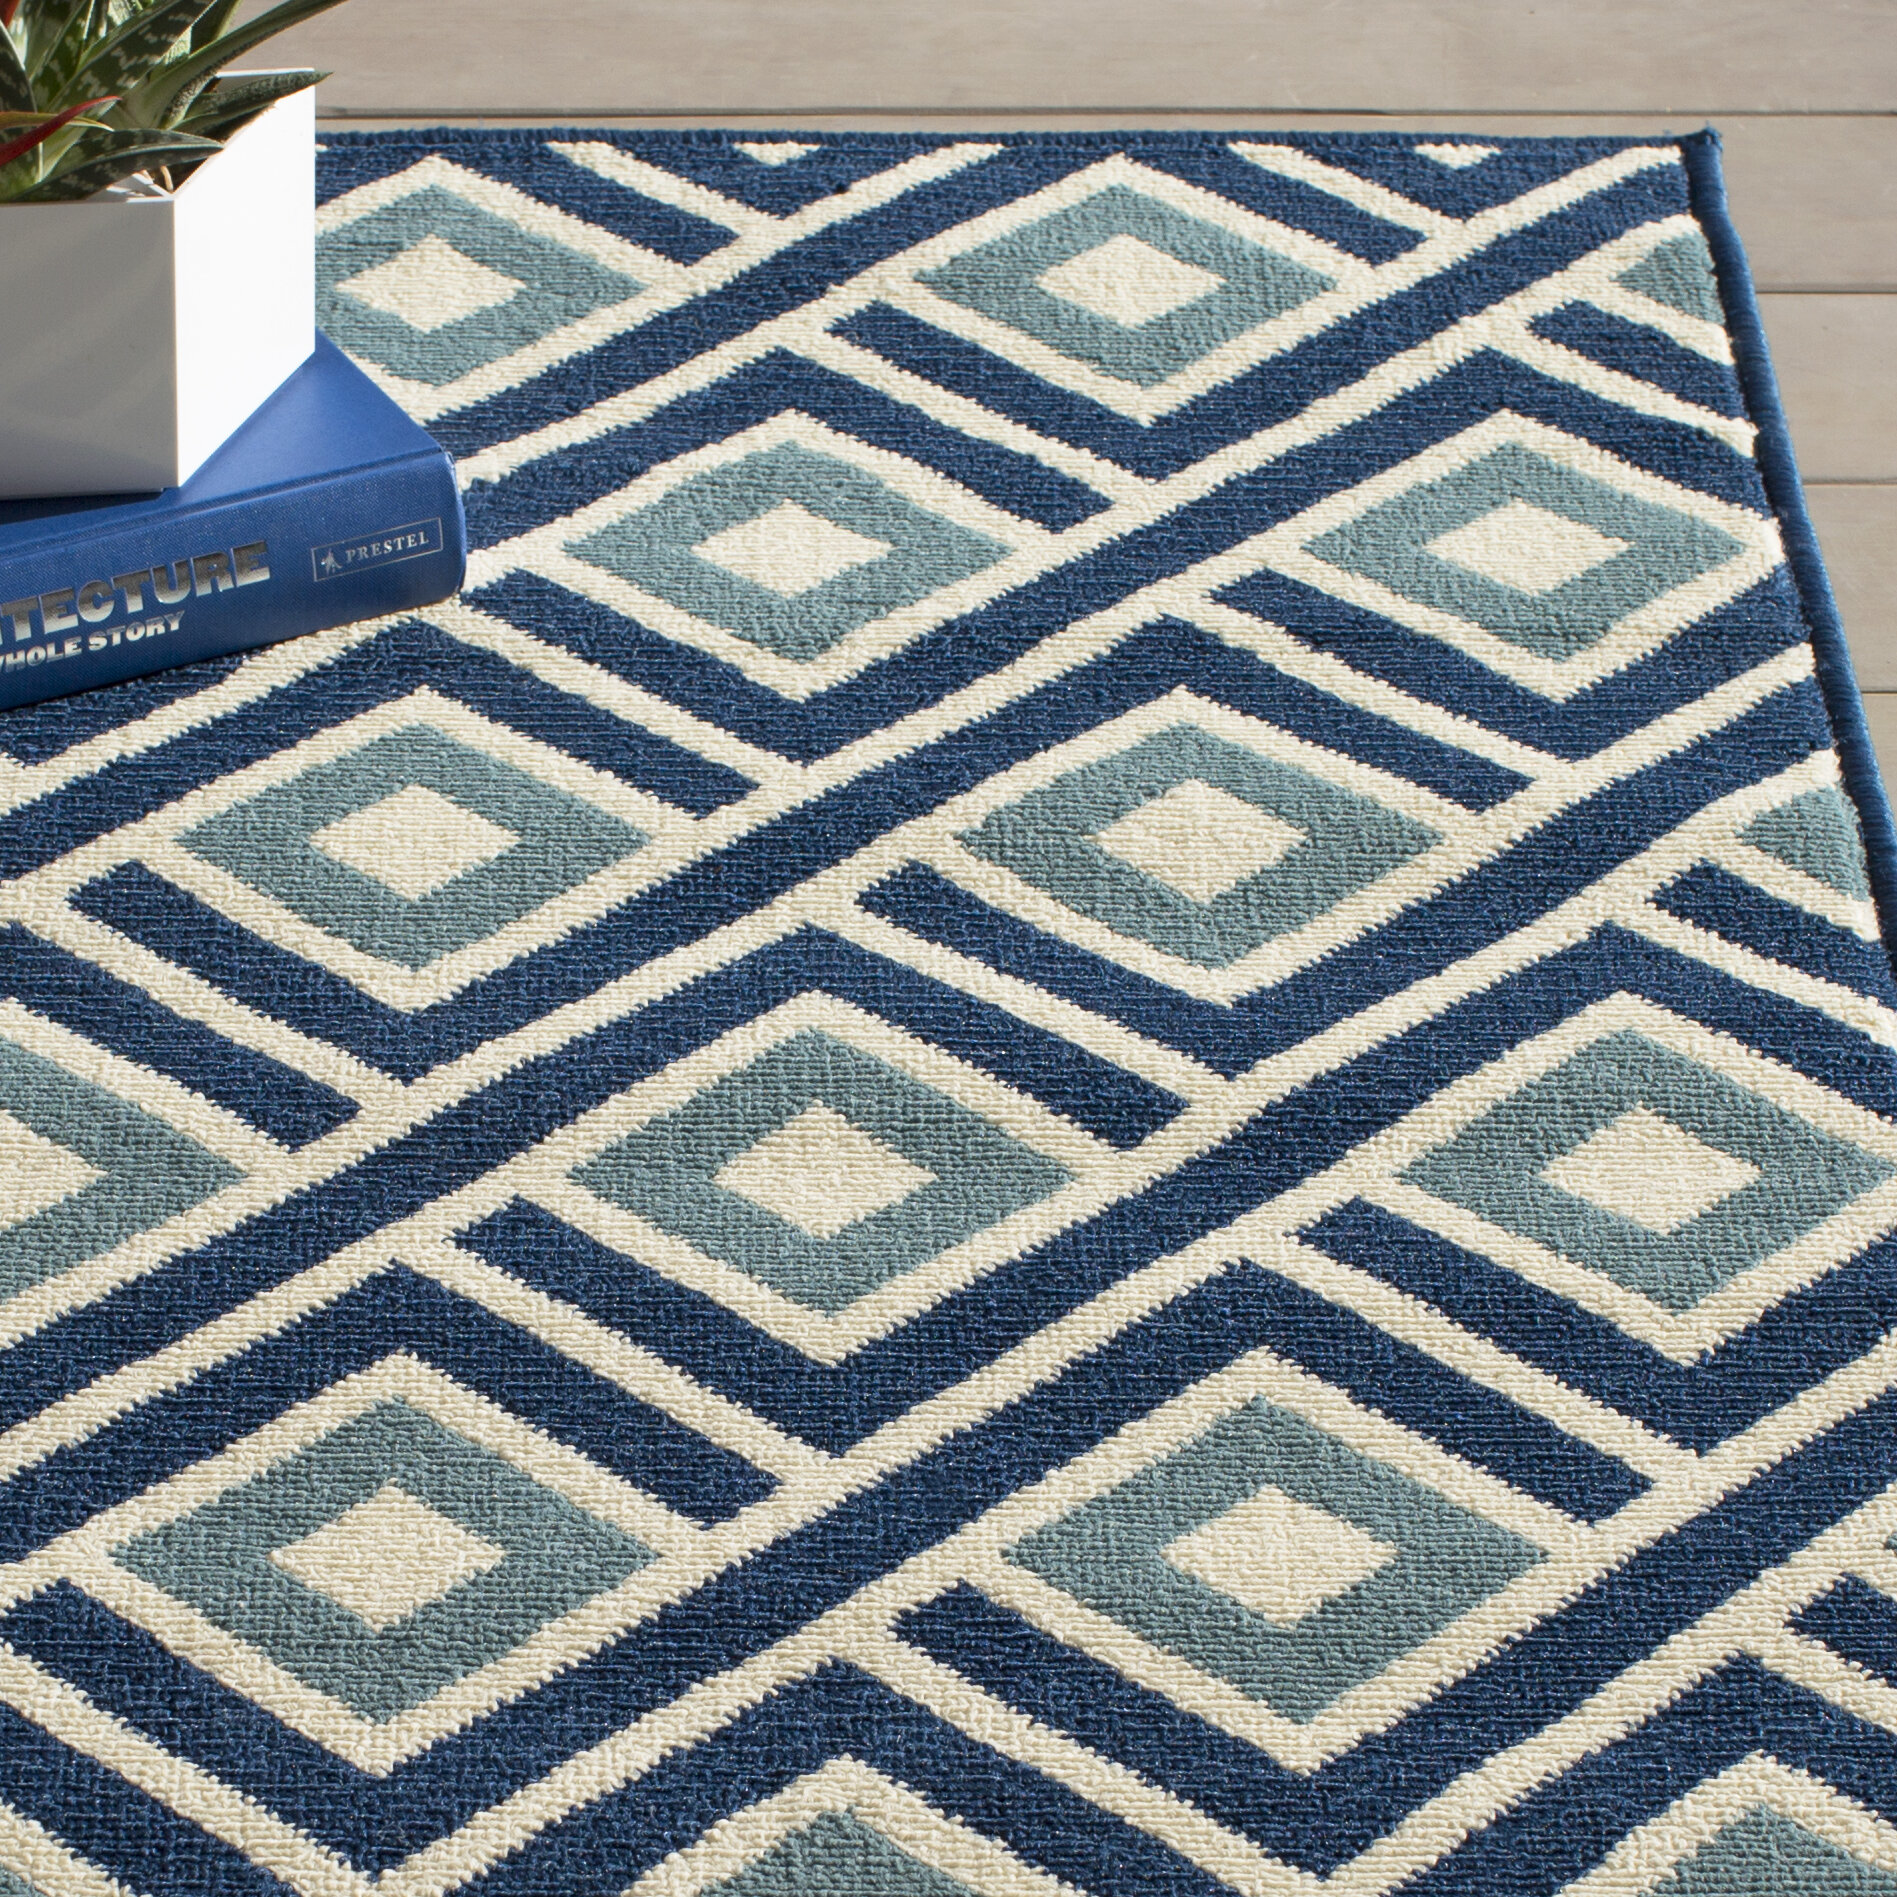 Willa Arlo Interiors Rahul Blue Indoor Outdoor Area Rug Reviews